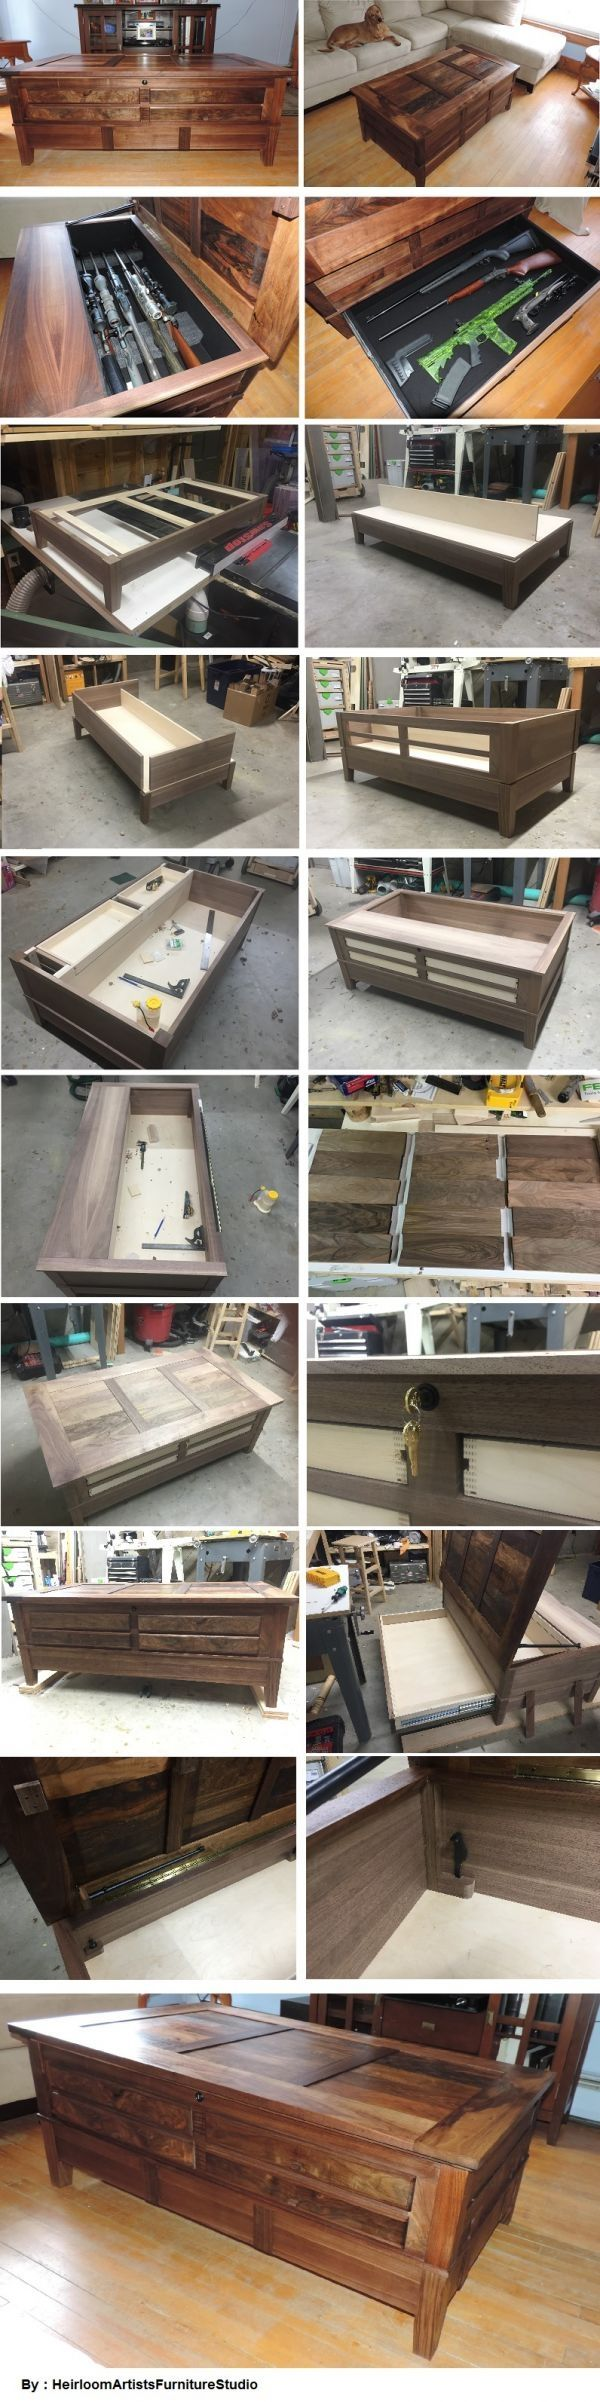 A walnut coffee table with hidden storage for rifles, built out of scrap rifle stock blanks. By HeirloomArtistsFurnitureStudio